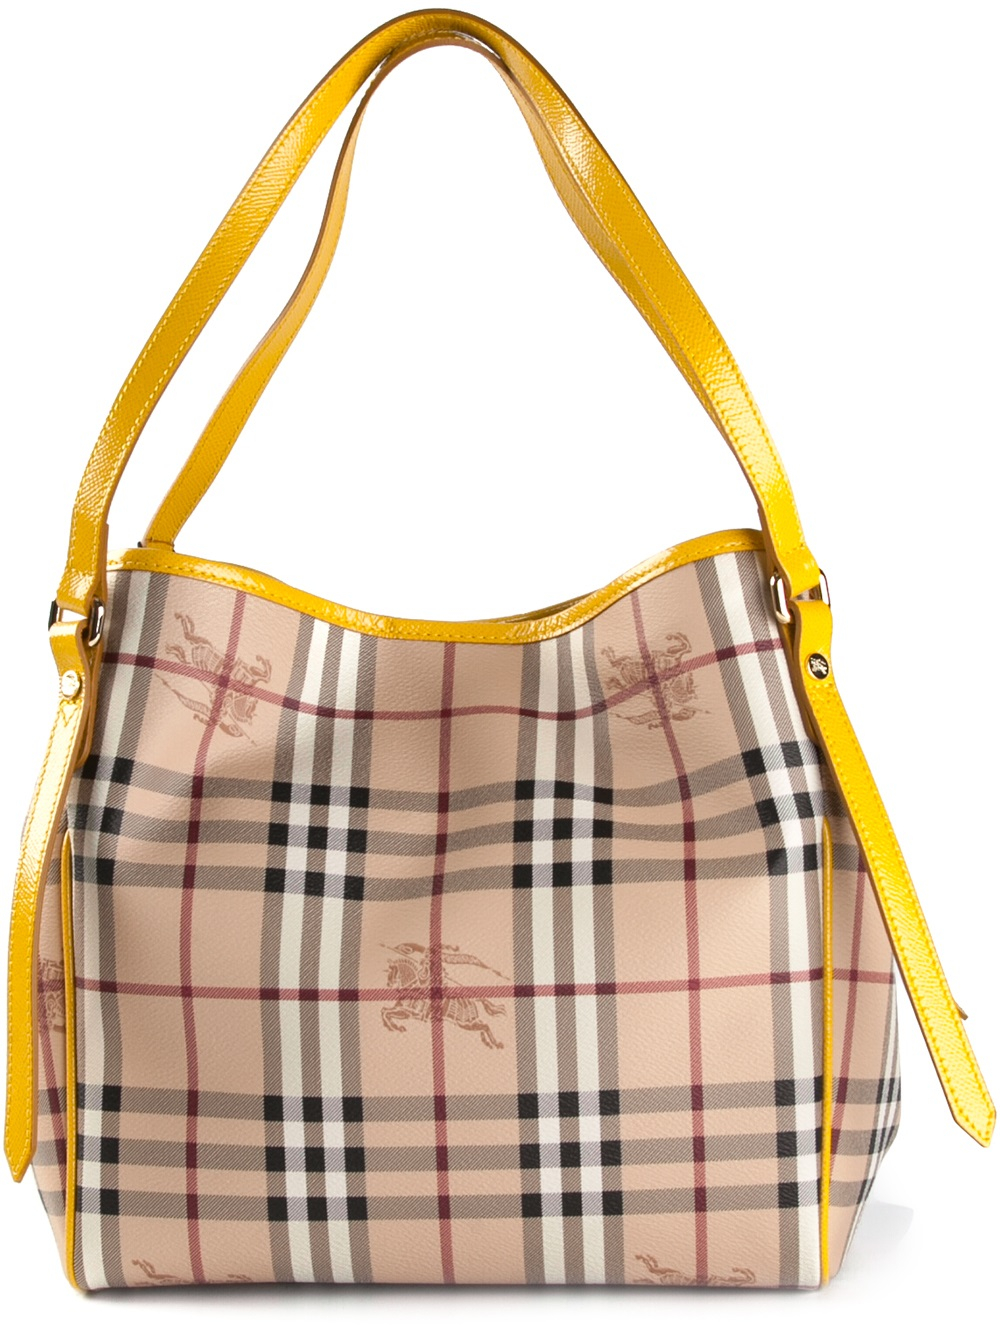 Burberry Tote Bag Yellow